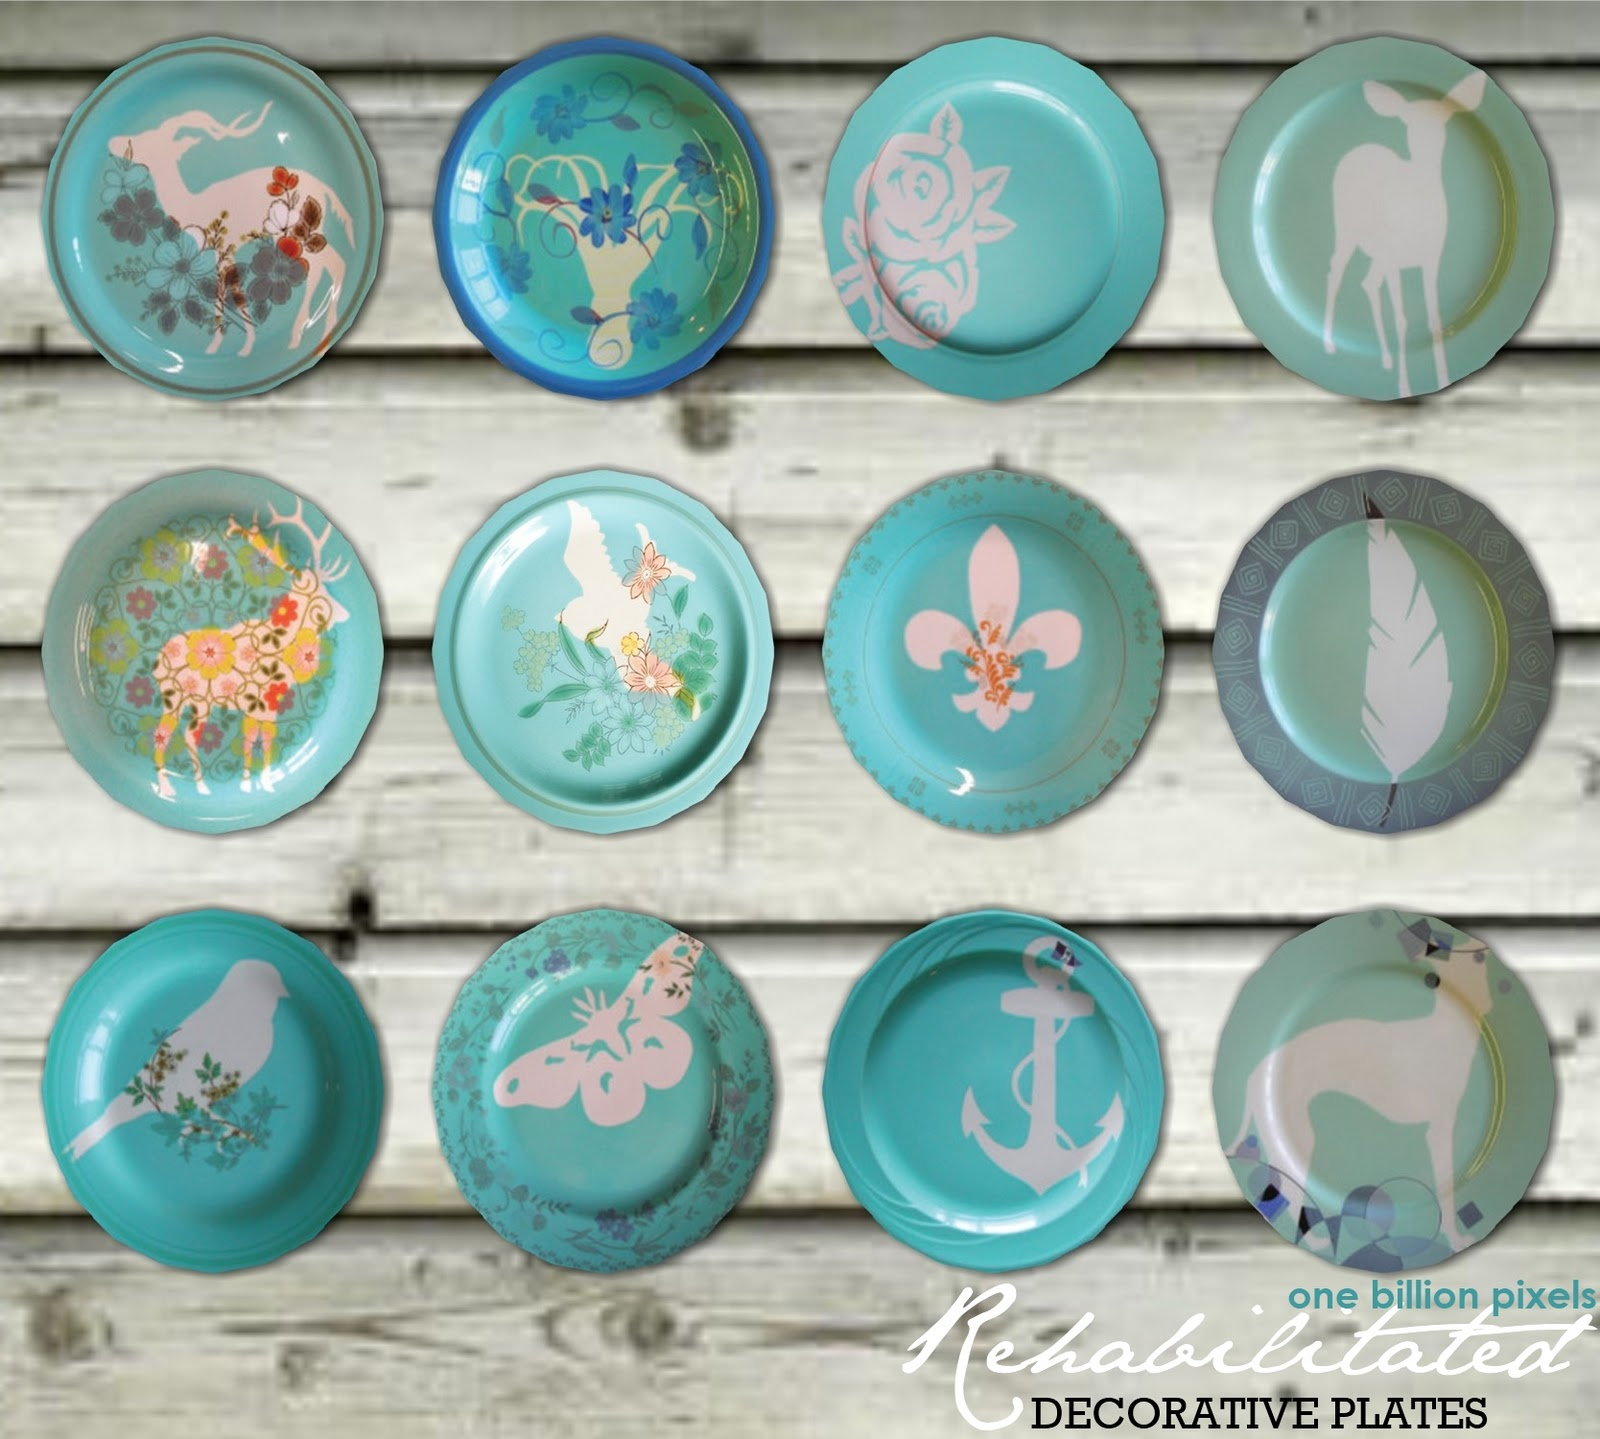 55 non default decorative plates updated now with slots for Decoration plater